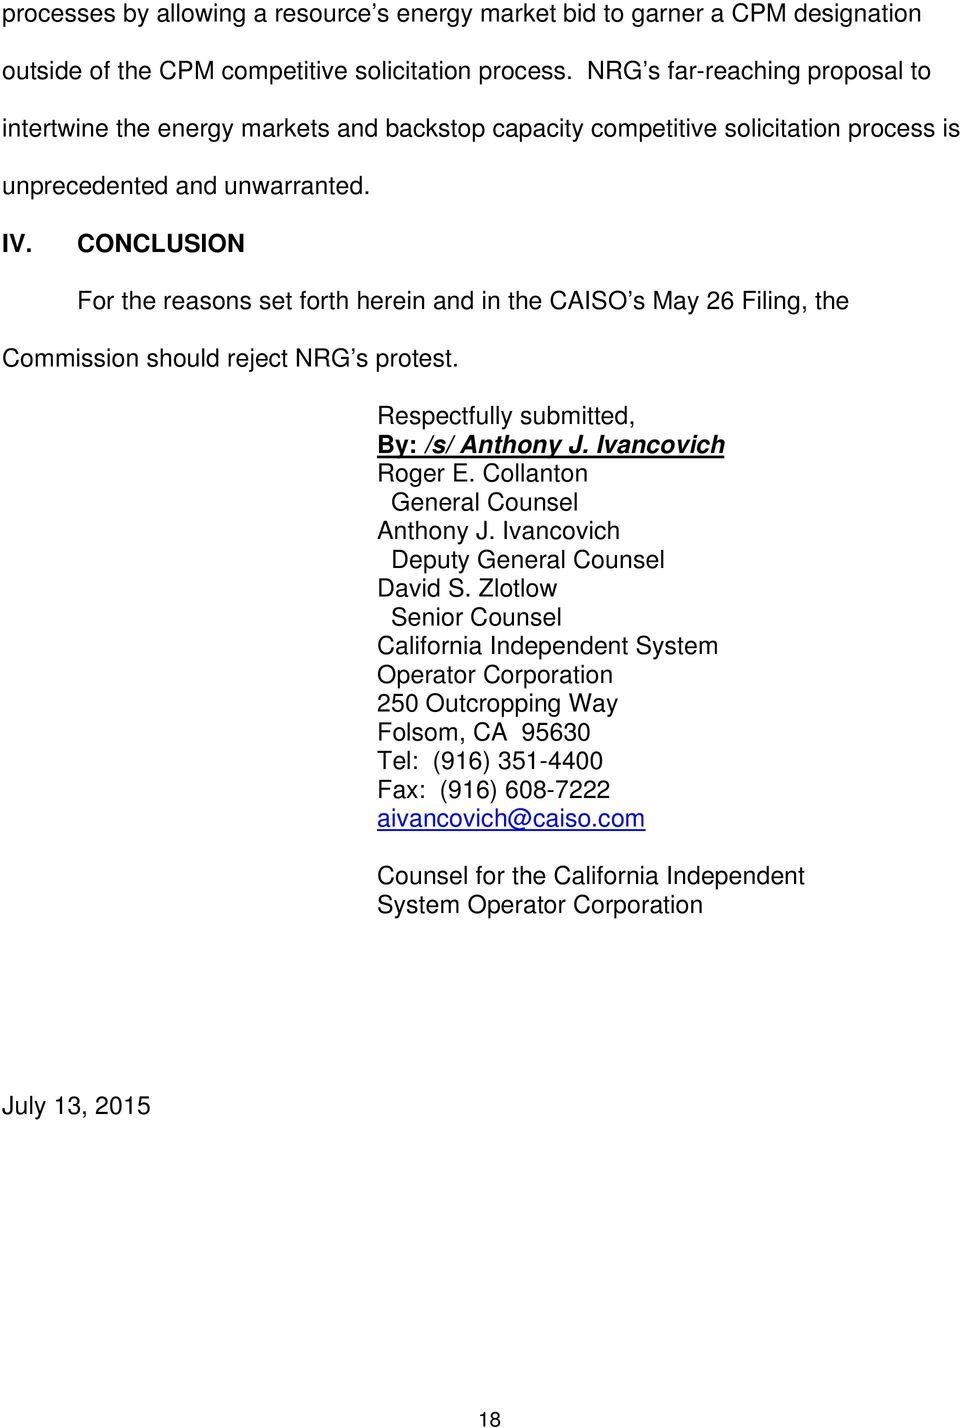 CONCLUSION For the reasons set forth herein and in the CAISO s May 26 Filing, the Commission should reject NRG s protest. Respectfully submitted, By: /s/ Anthony J. Ivancovich Roger E.